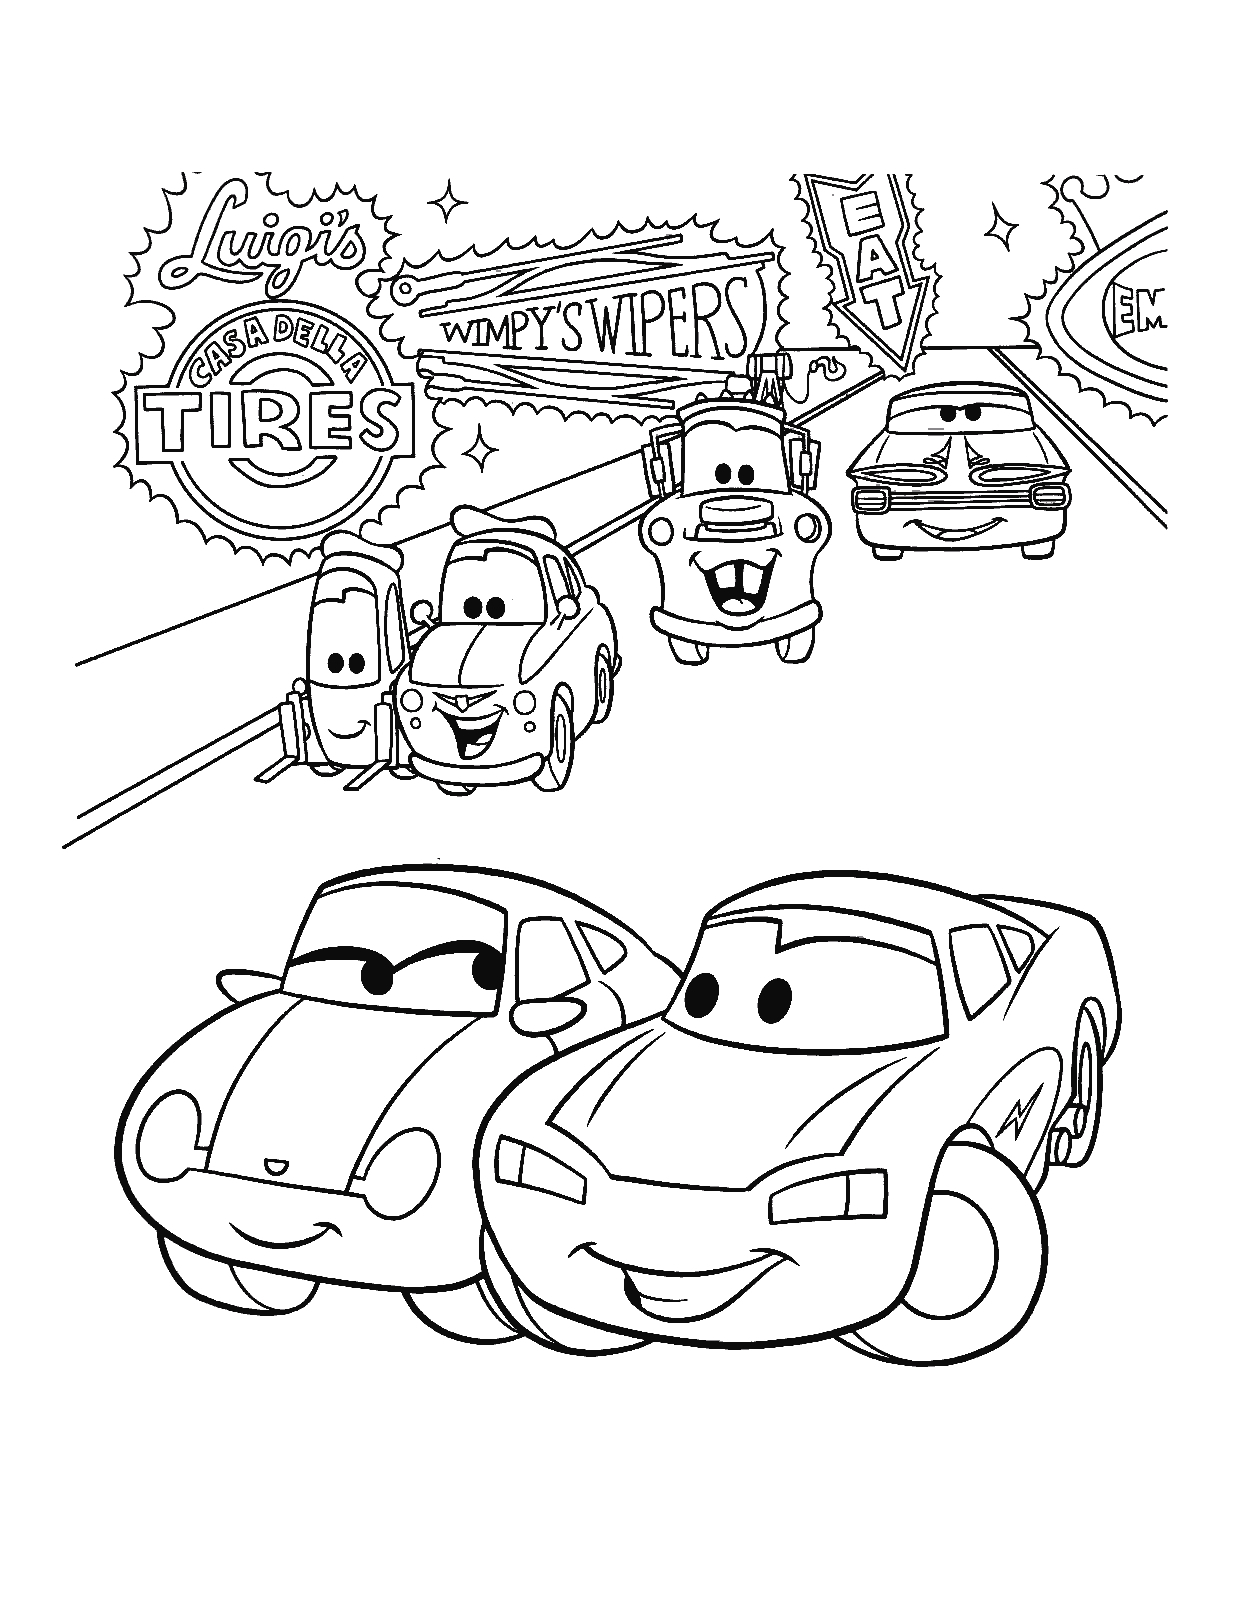 disney cars 2 colouring pictures to print cars 2 coloring pages for kids printable free cars pictures to colouring 2 print disney